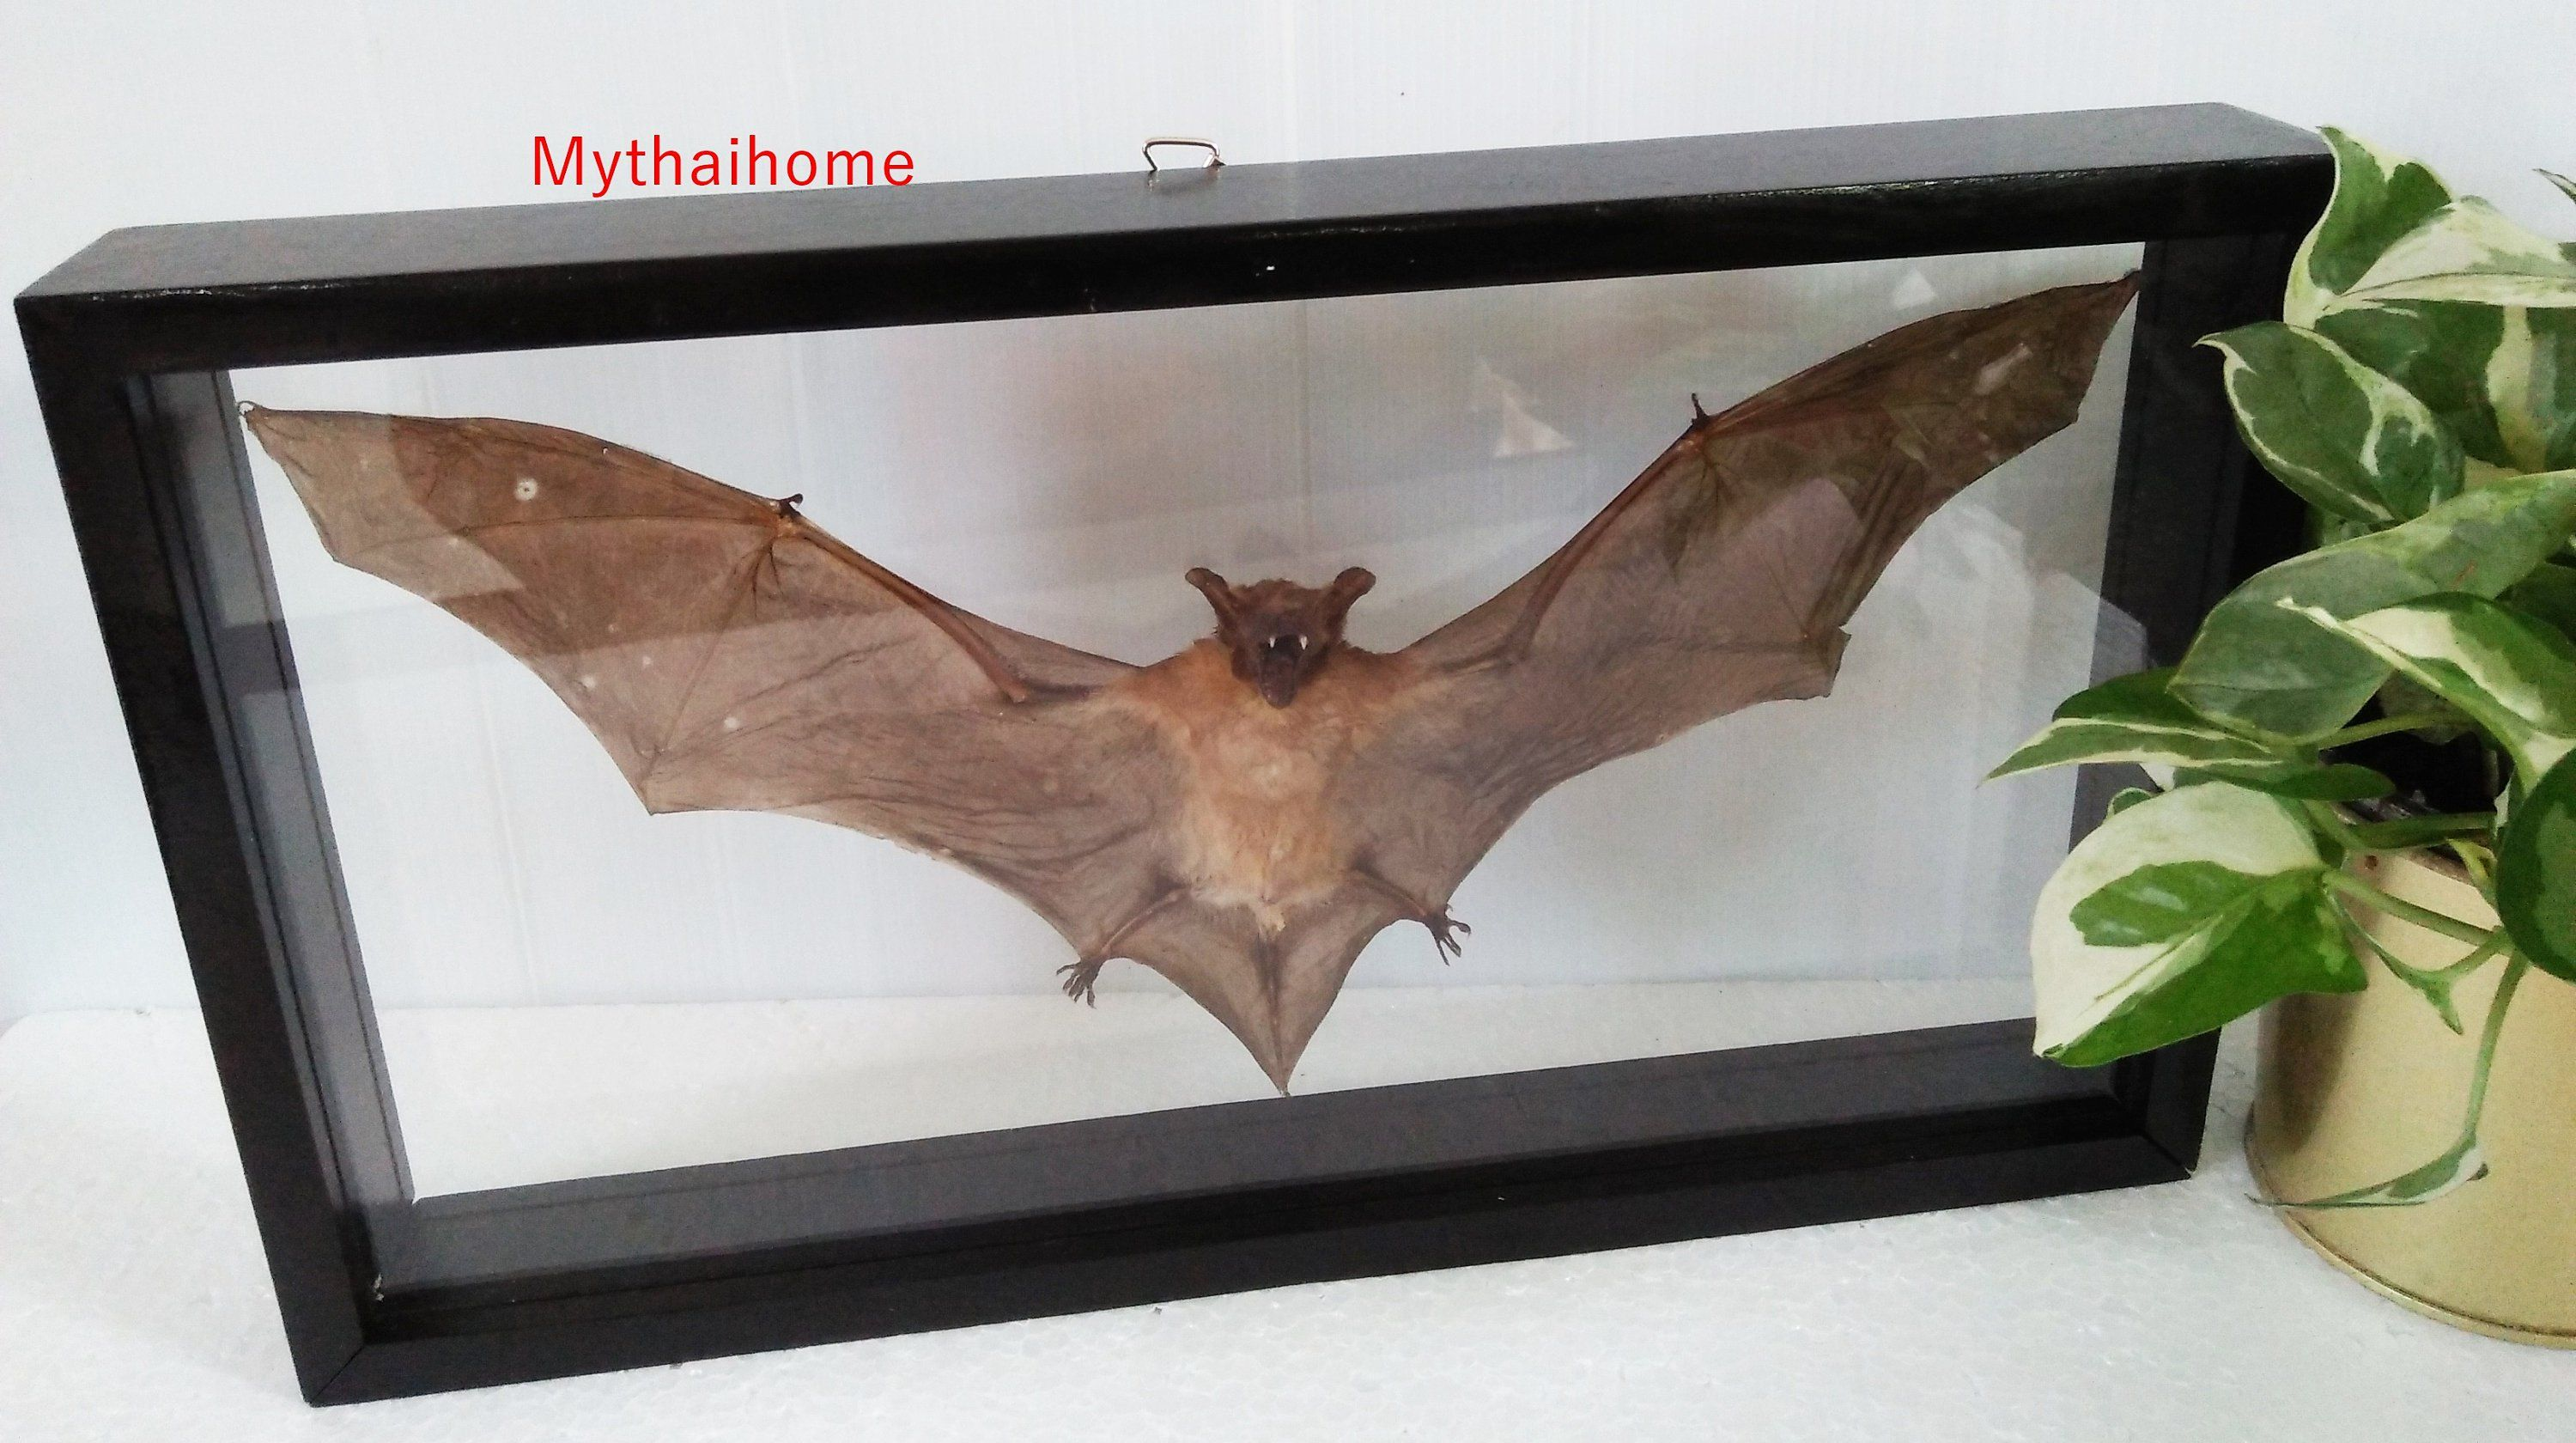 Real Collection Specimen Hairless Horseshoe Taxidermy Bat Framed Display Wooden In A Box Insect Bug Double Gl Gift Mounted Wall Art Decor By Mythaihome